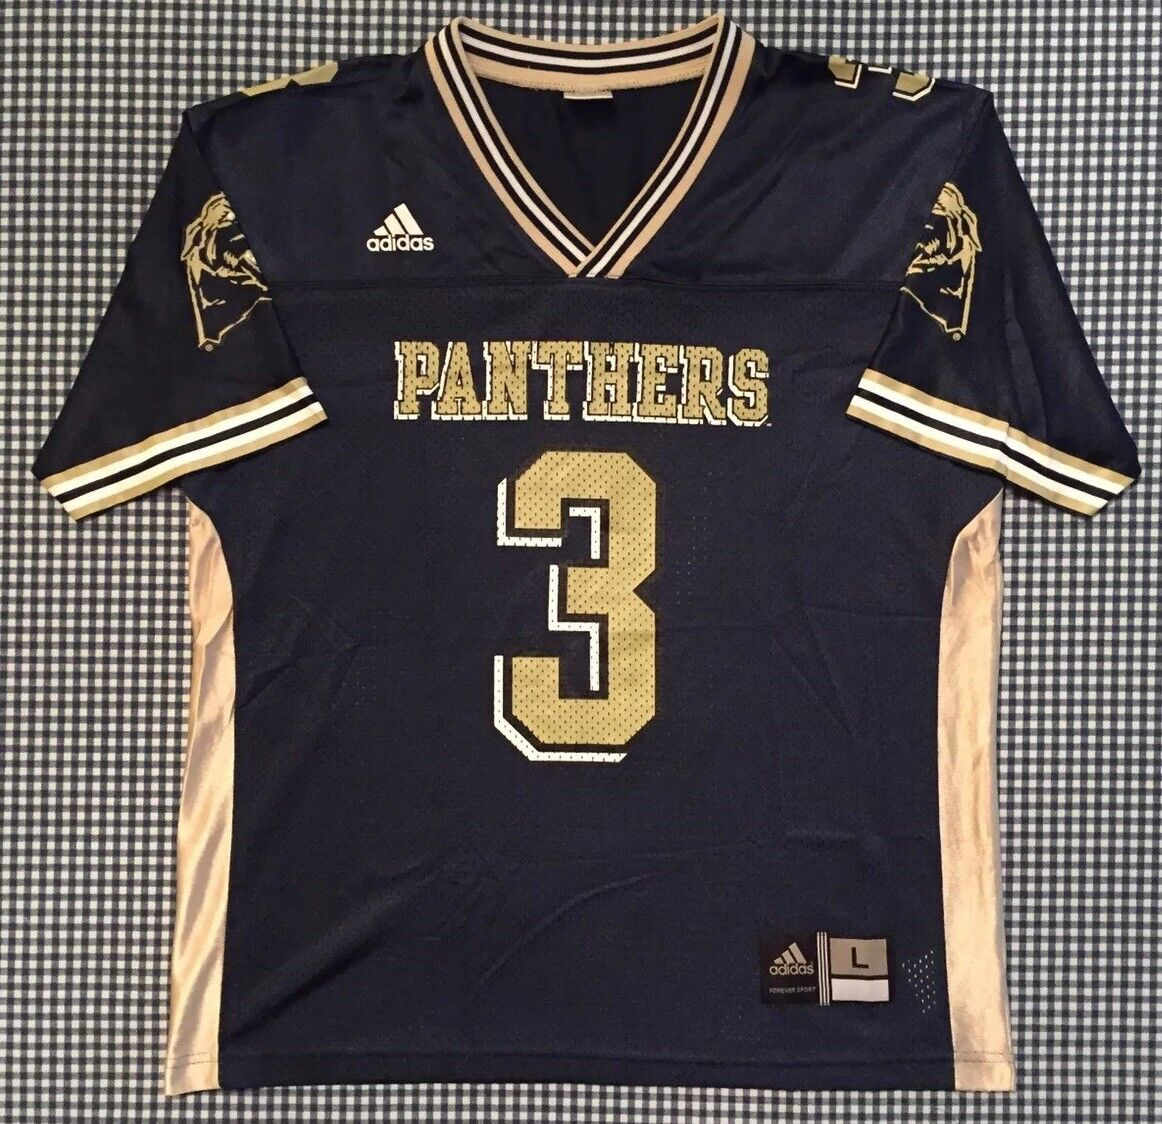 wholesale dealer 68dad 61a82 Pitt Panthers Adidas Replica Youth Kids Football Jersey Size Large 14-16  NCAA